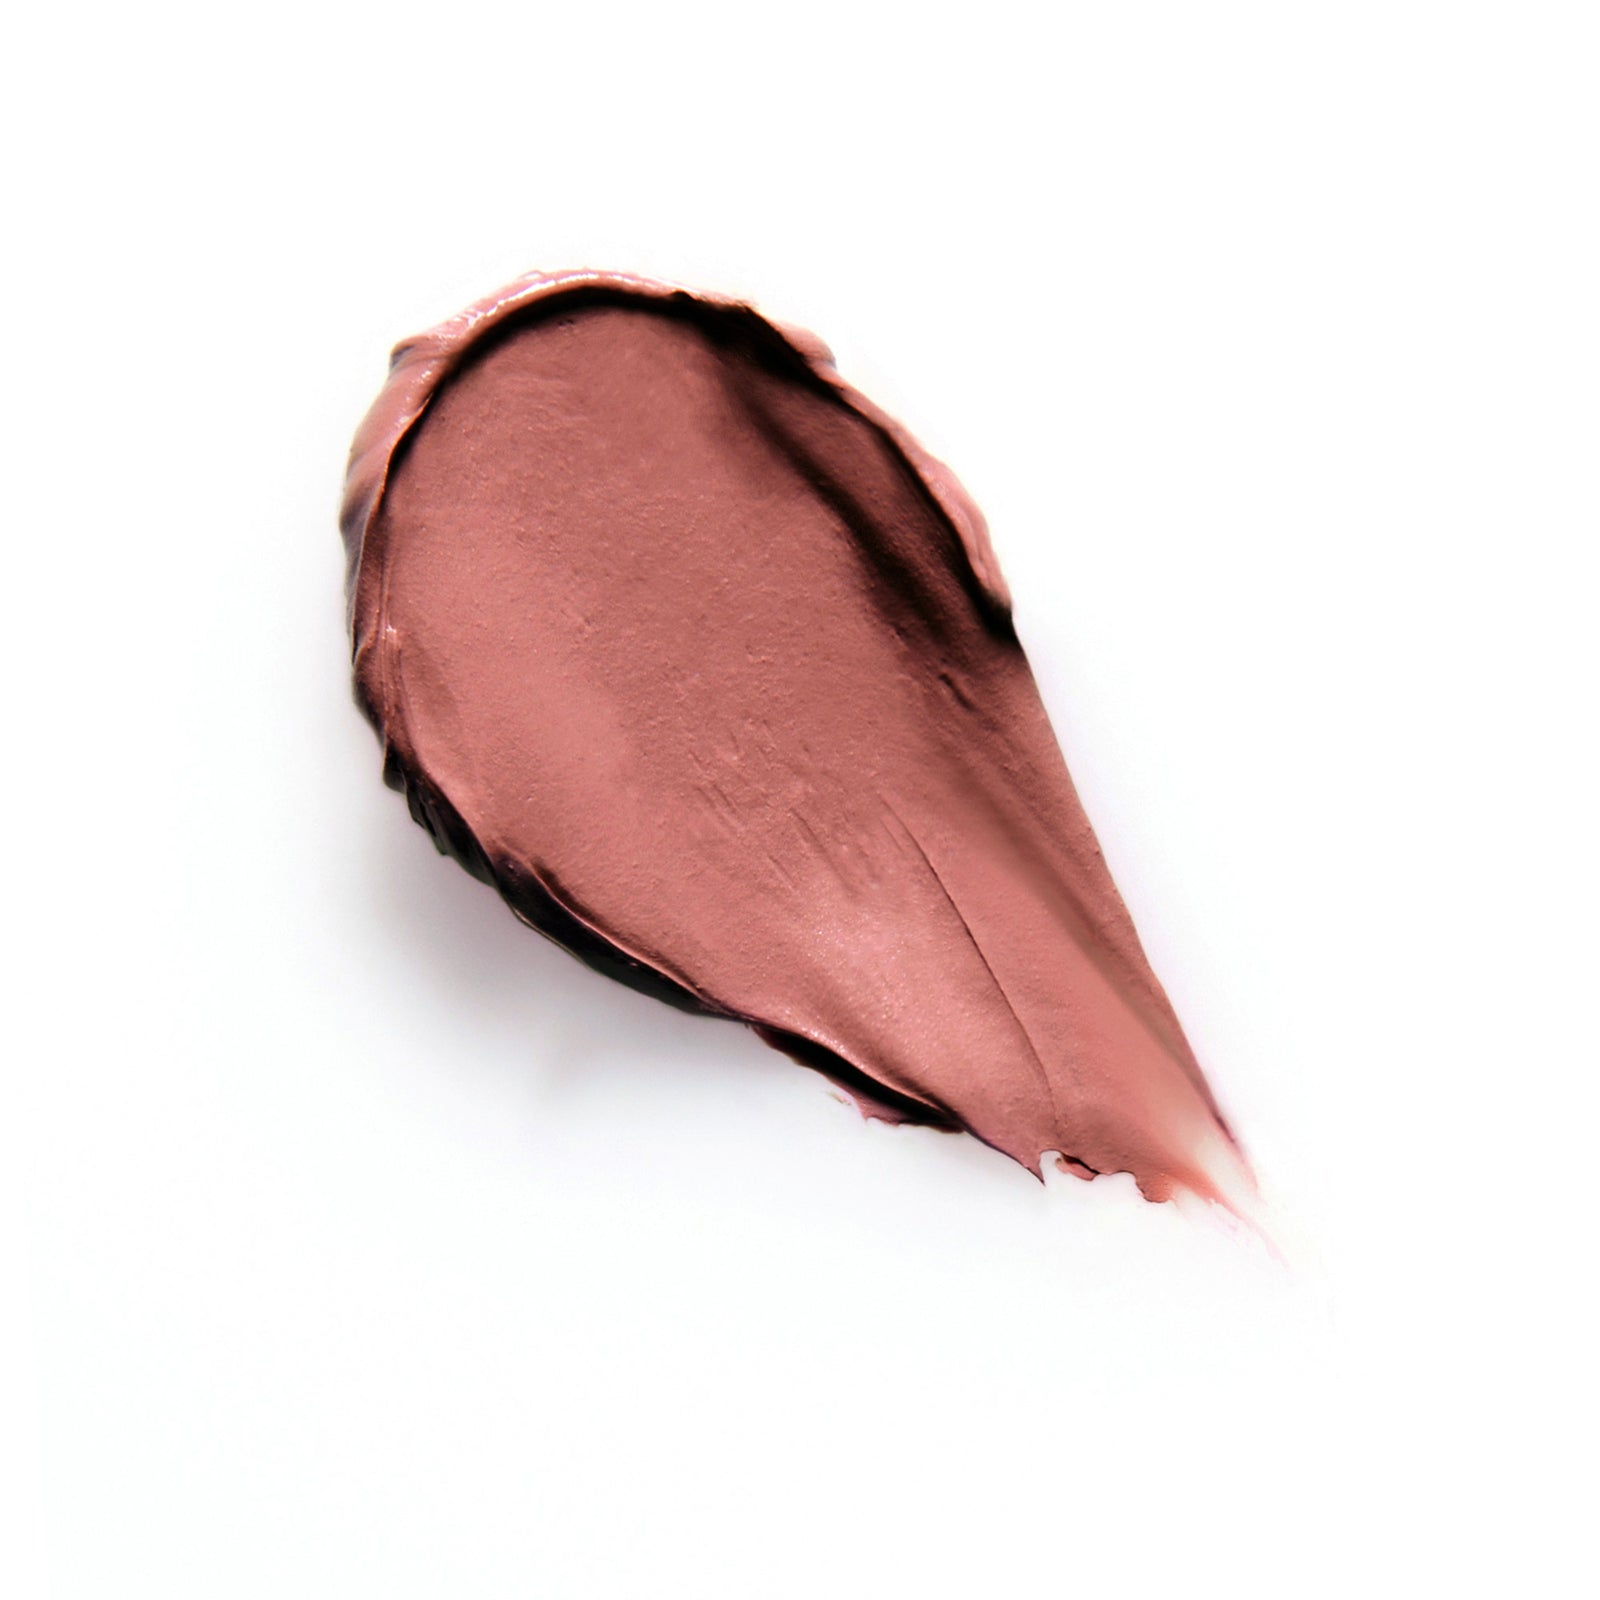 Oracle nude natural lipstick swatch cruelty free